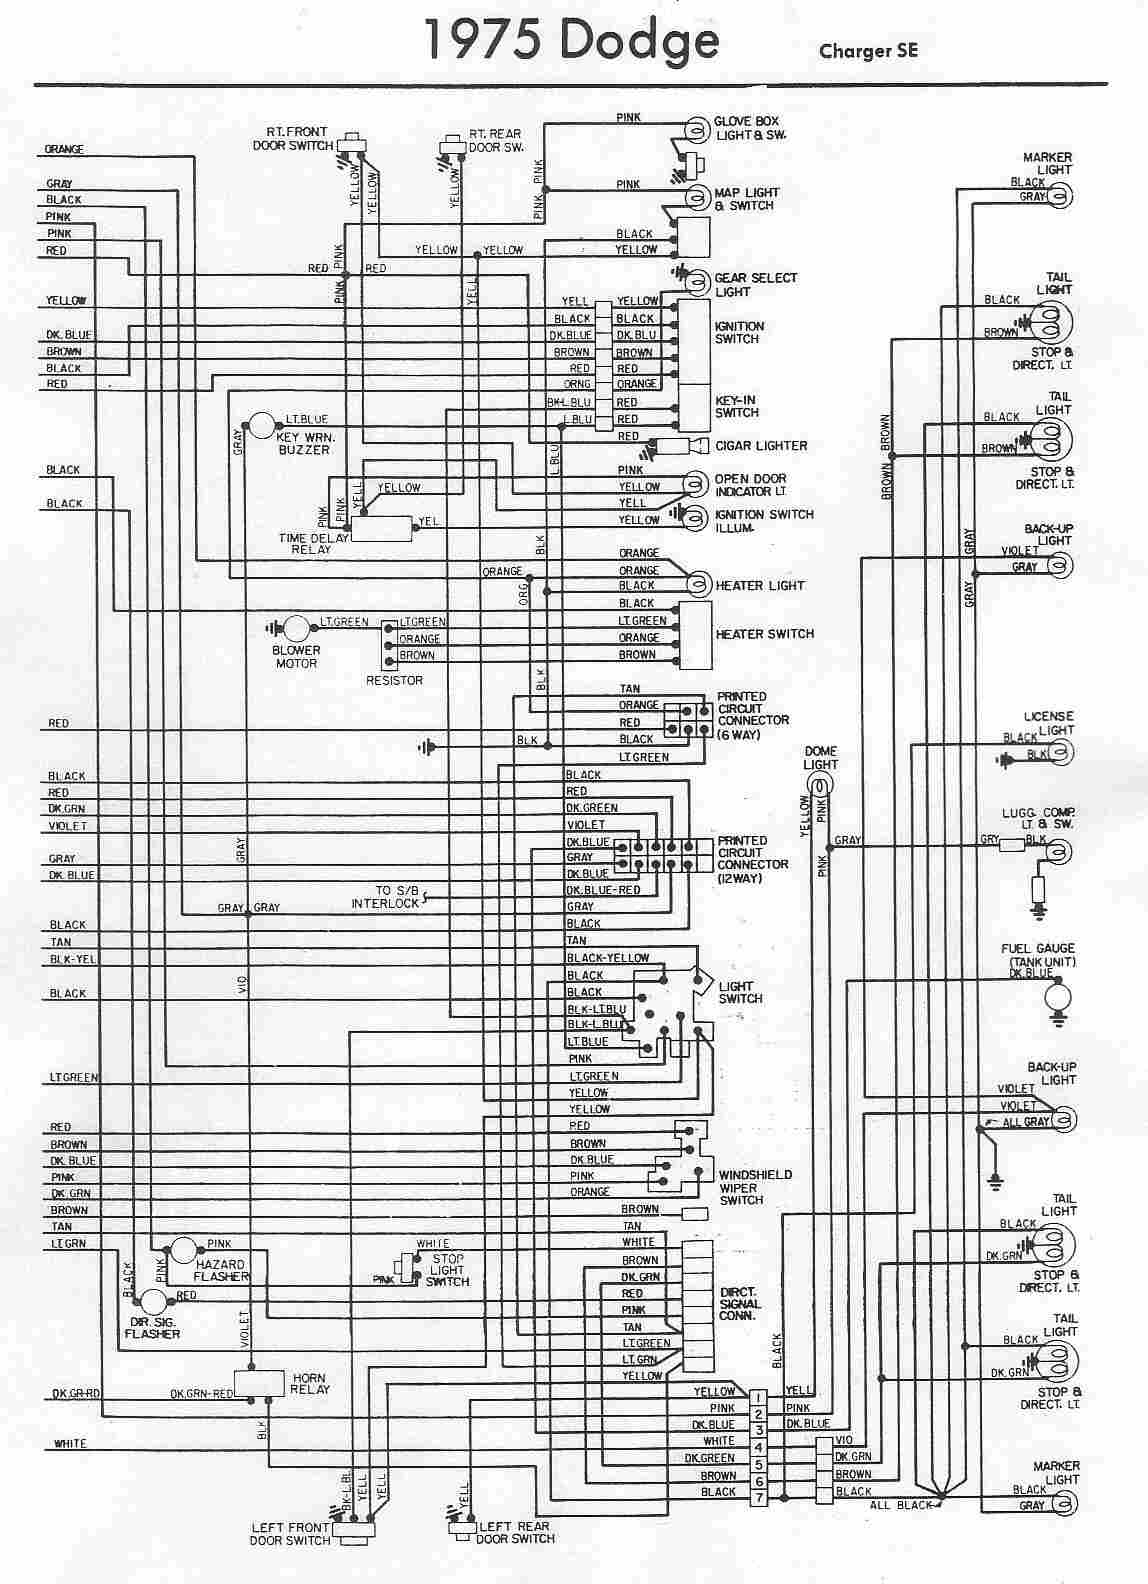 1974 dodge power wagon wiring diagram schematic diagram 1956 Dodge Power Wagon 1977 dodge power wagon wiring diagram schema wiring diagram electrical diagram 1978 dodge power wagon 1978